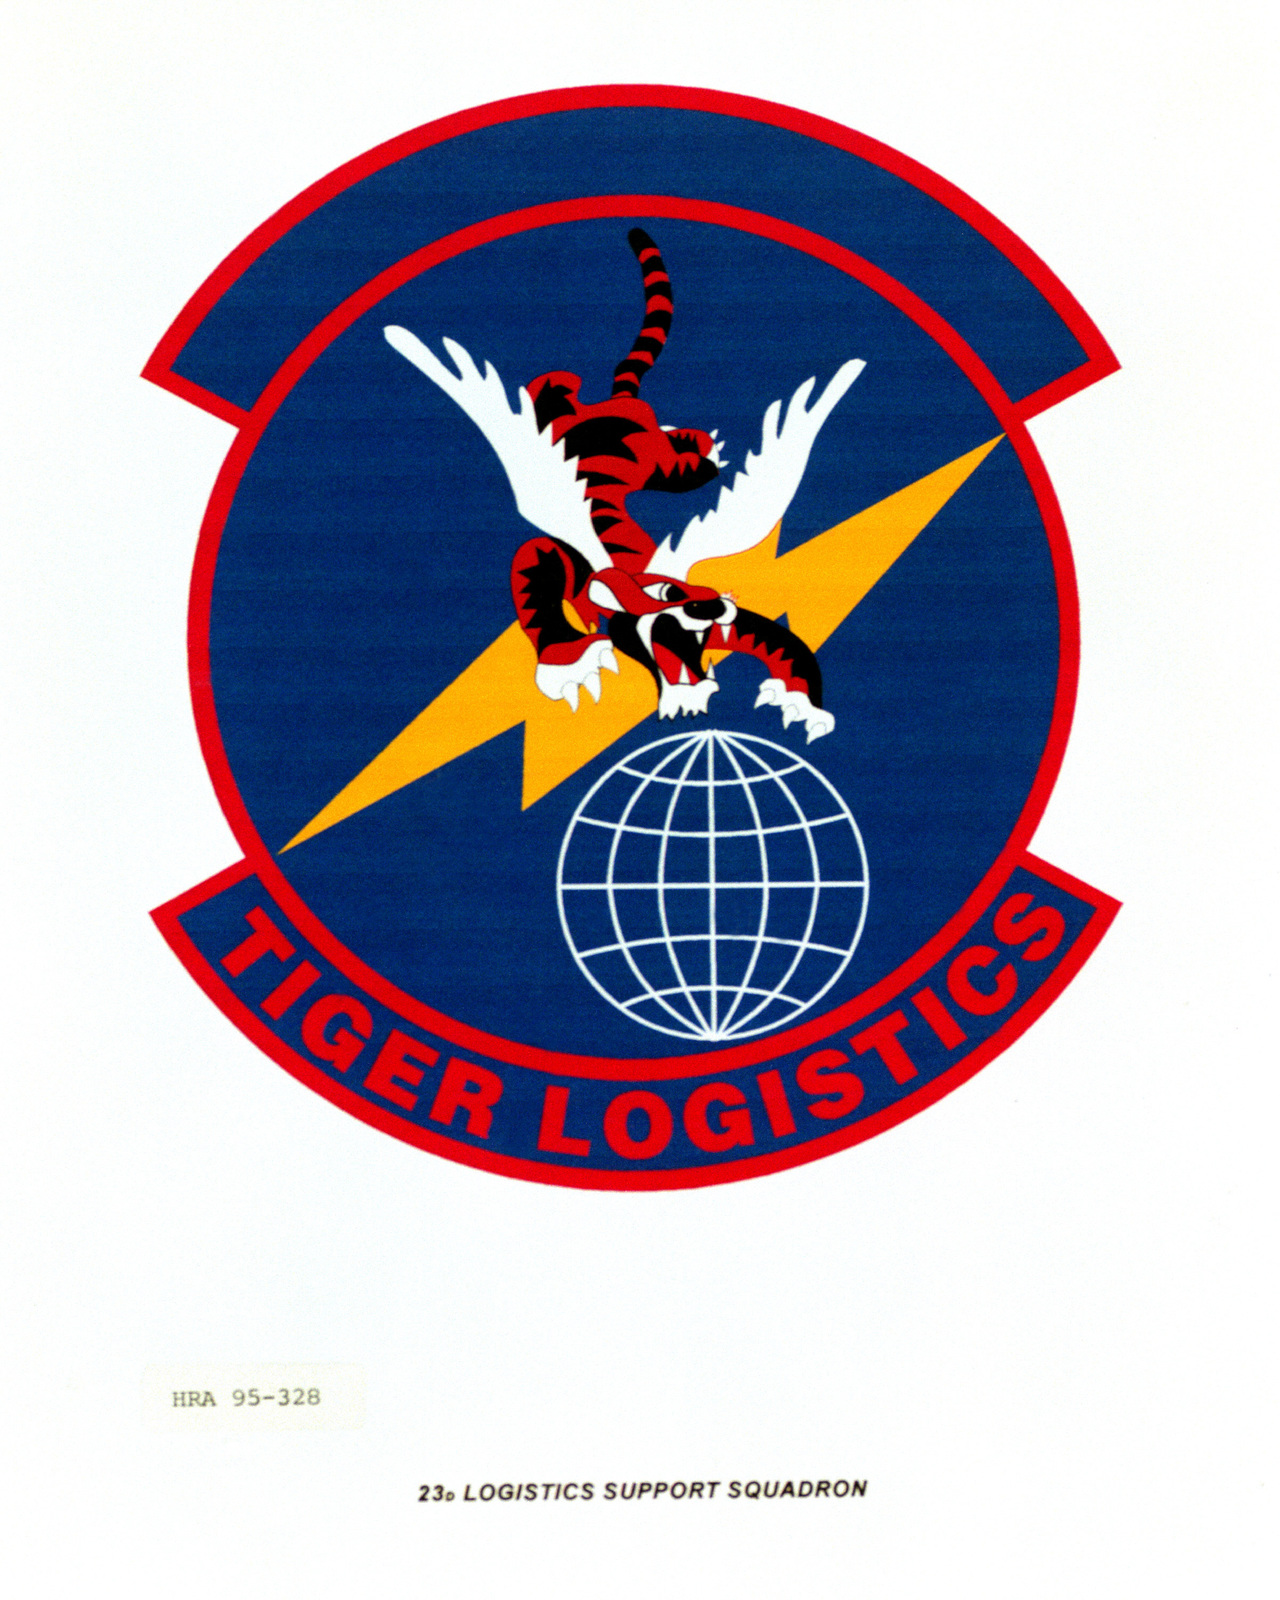 Approved Insignia for the 23rd Logistics Support Squadron Exact Date Shot Unknown